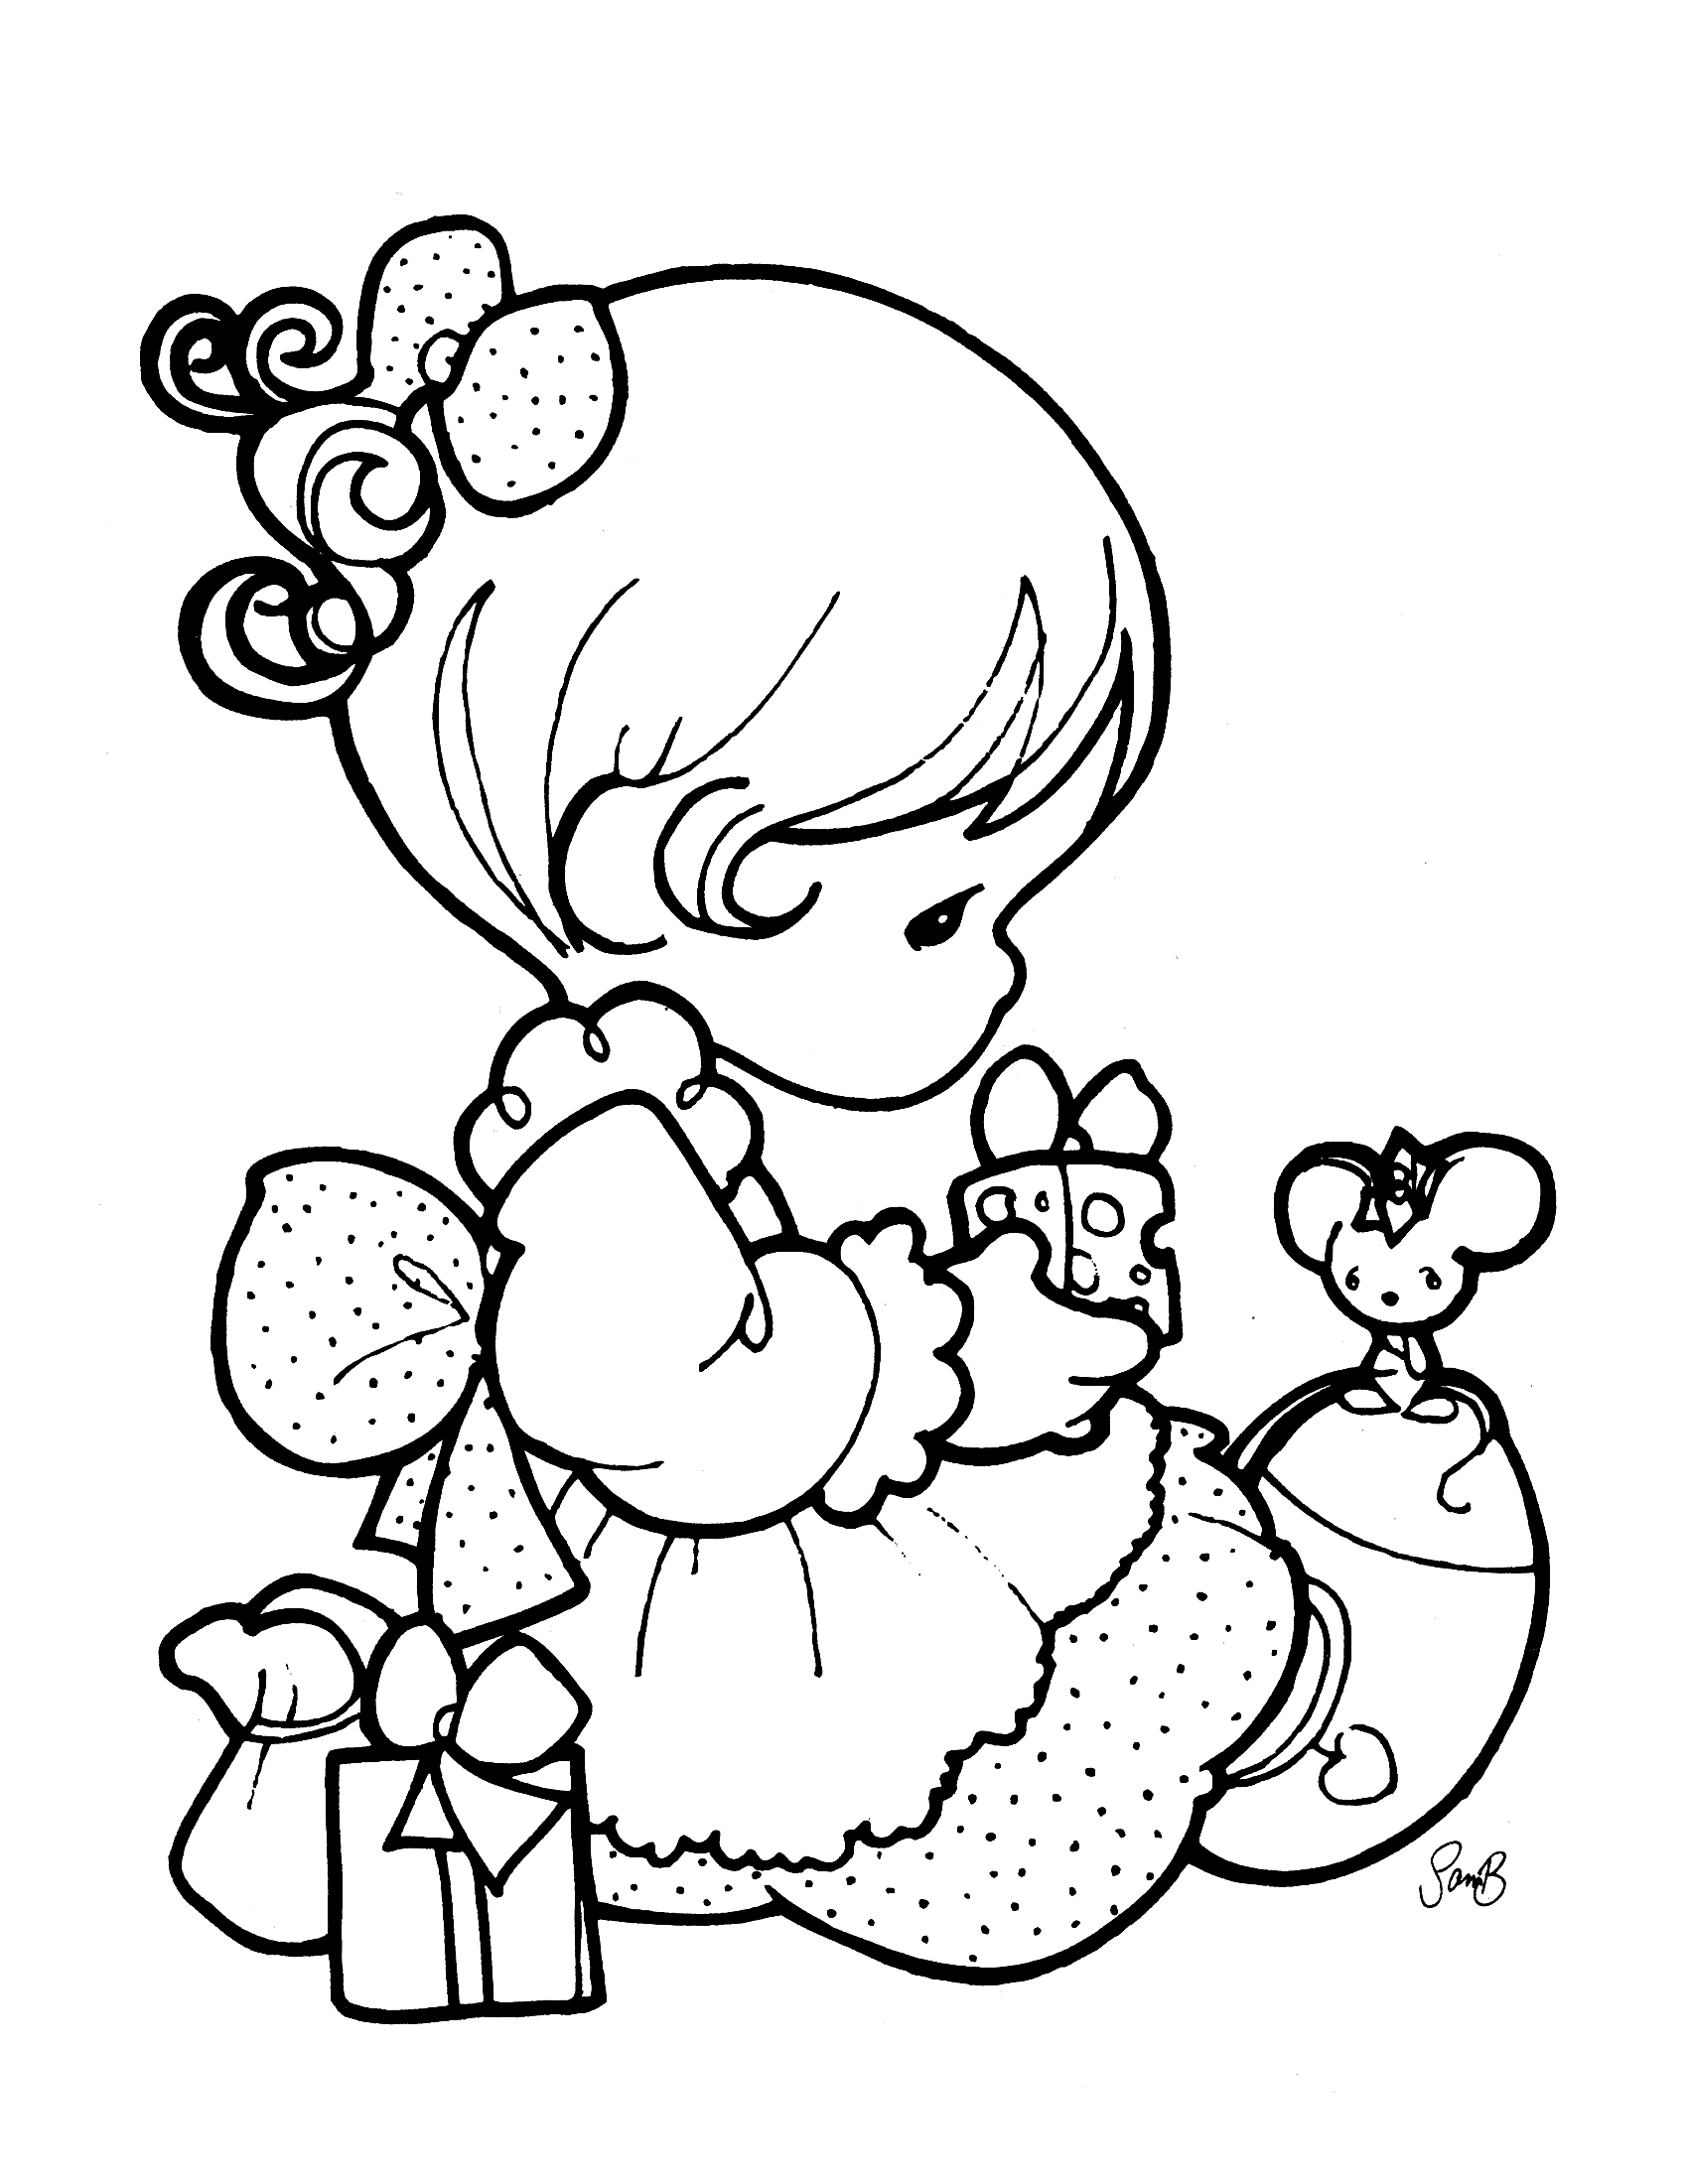 coloring baby pages free printable baby coloring pages for kids baby coloring pages 1 1